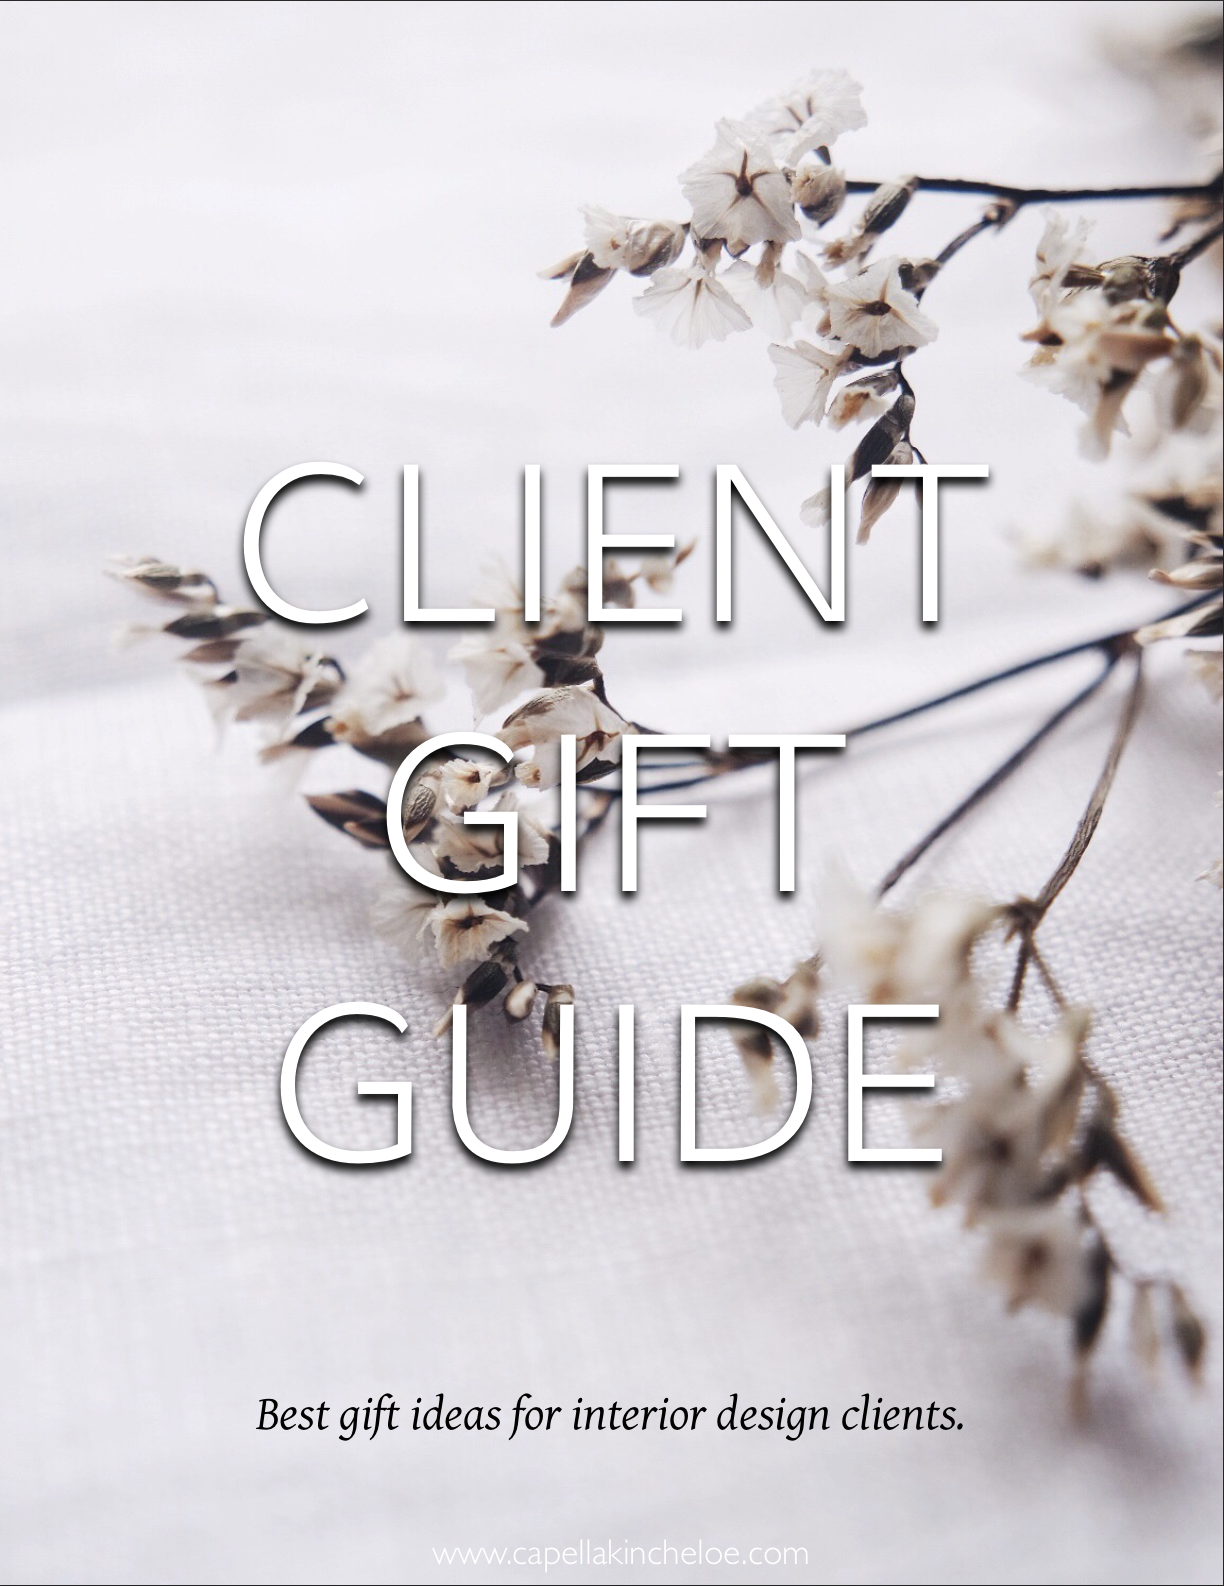 Not sure what you should give to clients as gifts? #clientgifts #cktradesecrets #interiordesignbusiness #giftguide #interiordesignclients